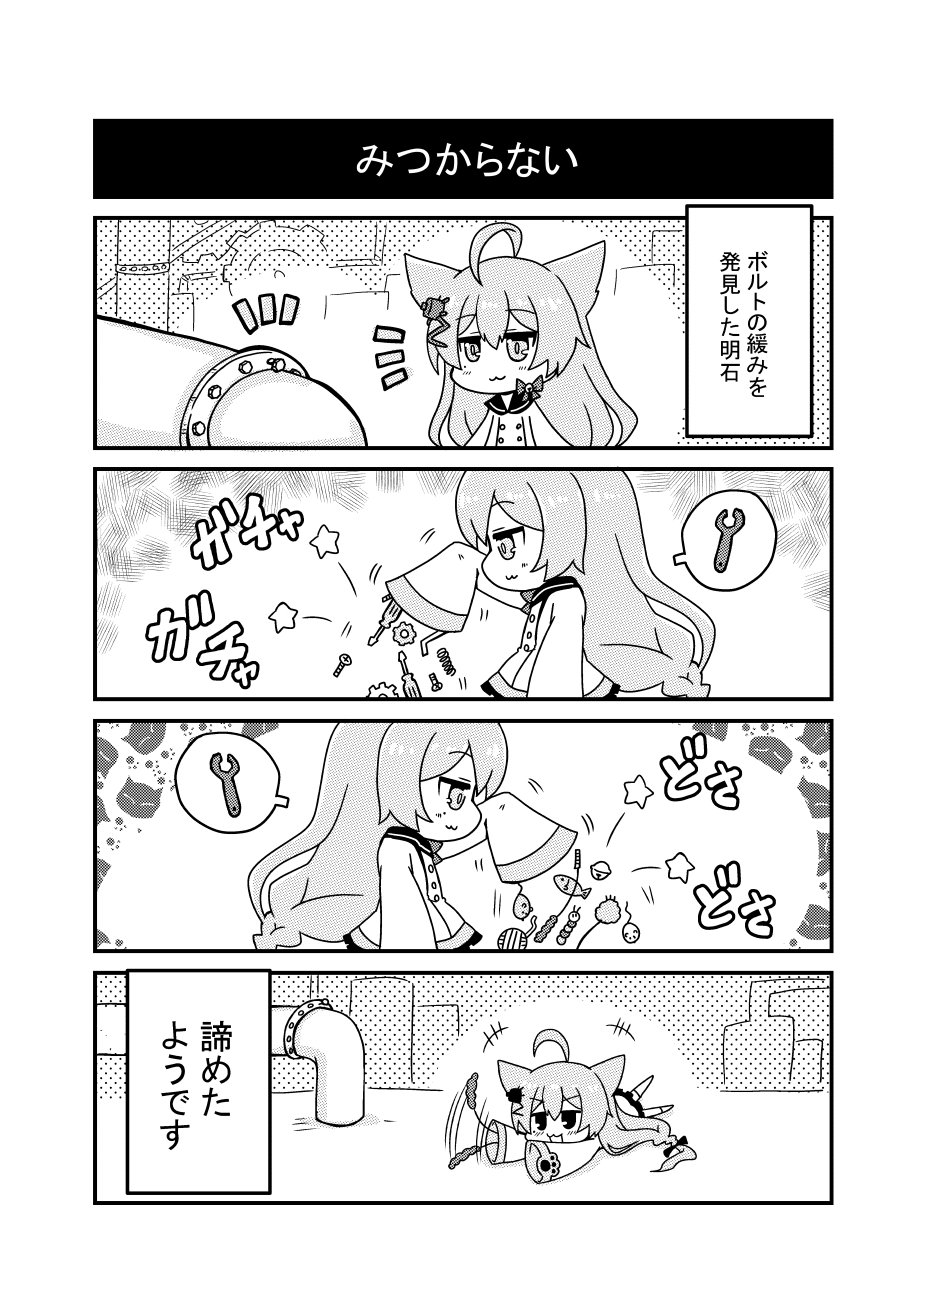 1girl 4koma :3 ahoge akashi_(azur_lane) animal_ears azur_lane bell cat_ears cat_teaser caterpillar chibi comic commentary_request crosshatching gears greyscale hair_ornament highres long_hair long_sleeves lying monochrome mouse noai_nioshi nut_(hardware) paw_print pipes screw screwdriver spring_(object) star translation_request wrench yarn_ball